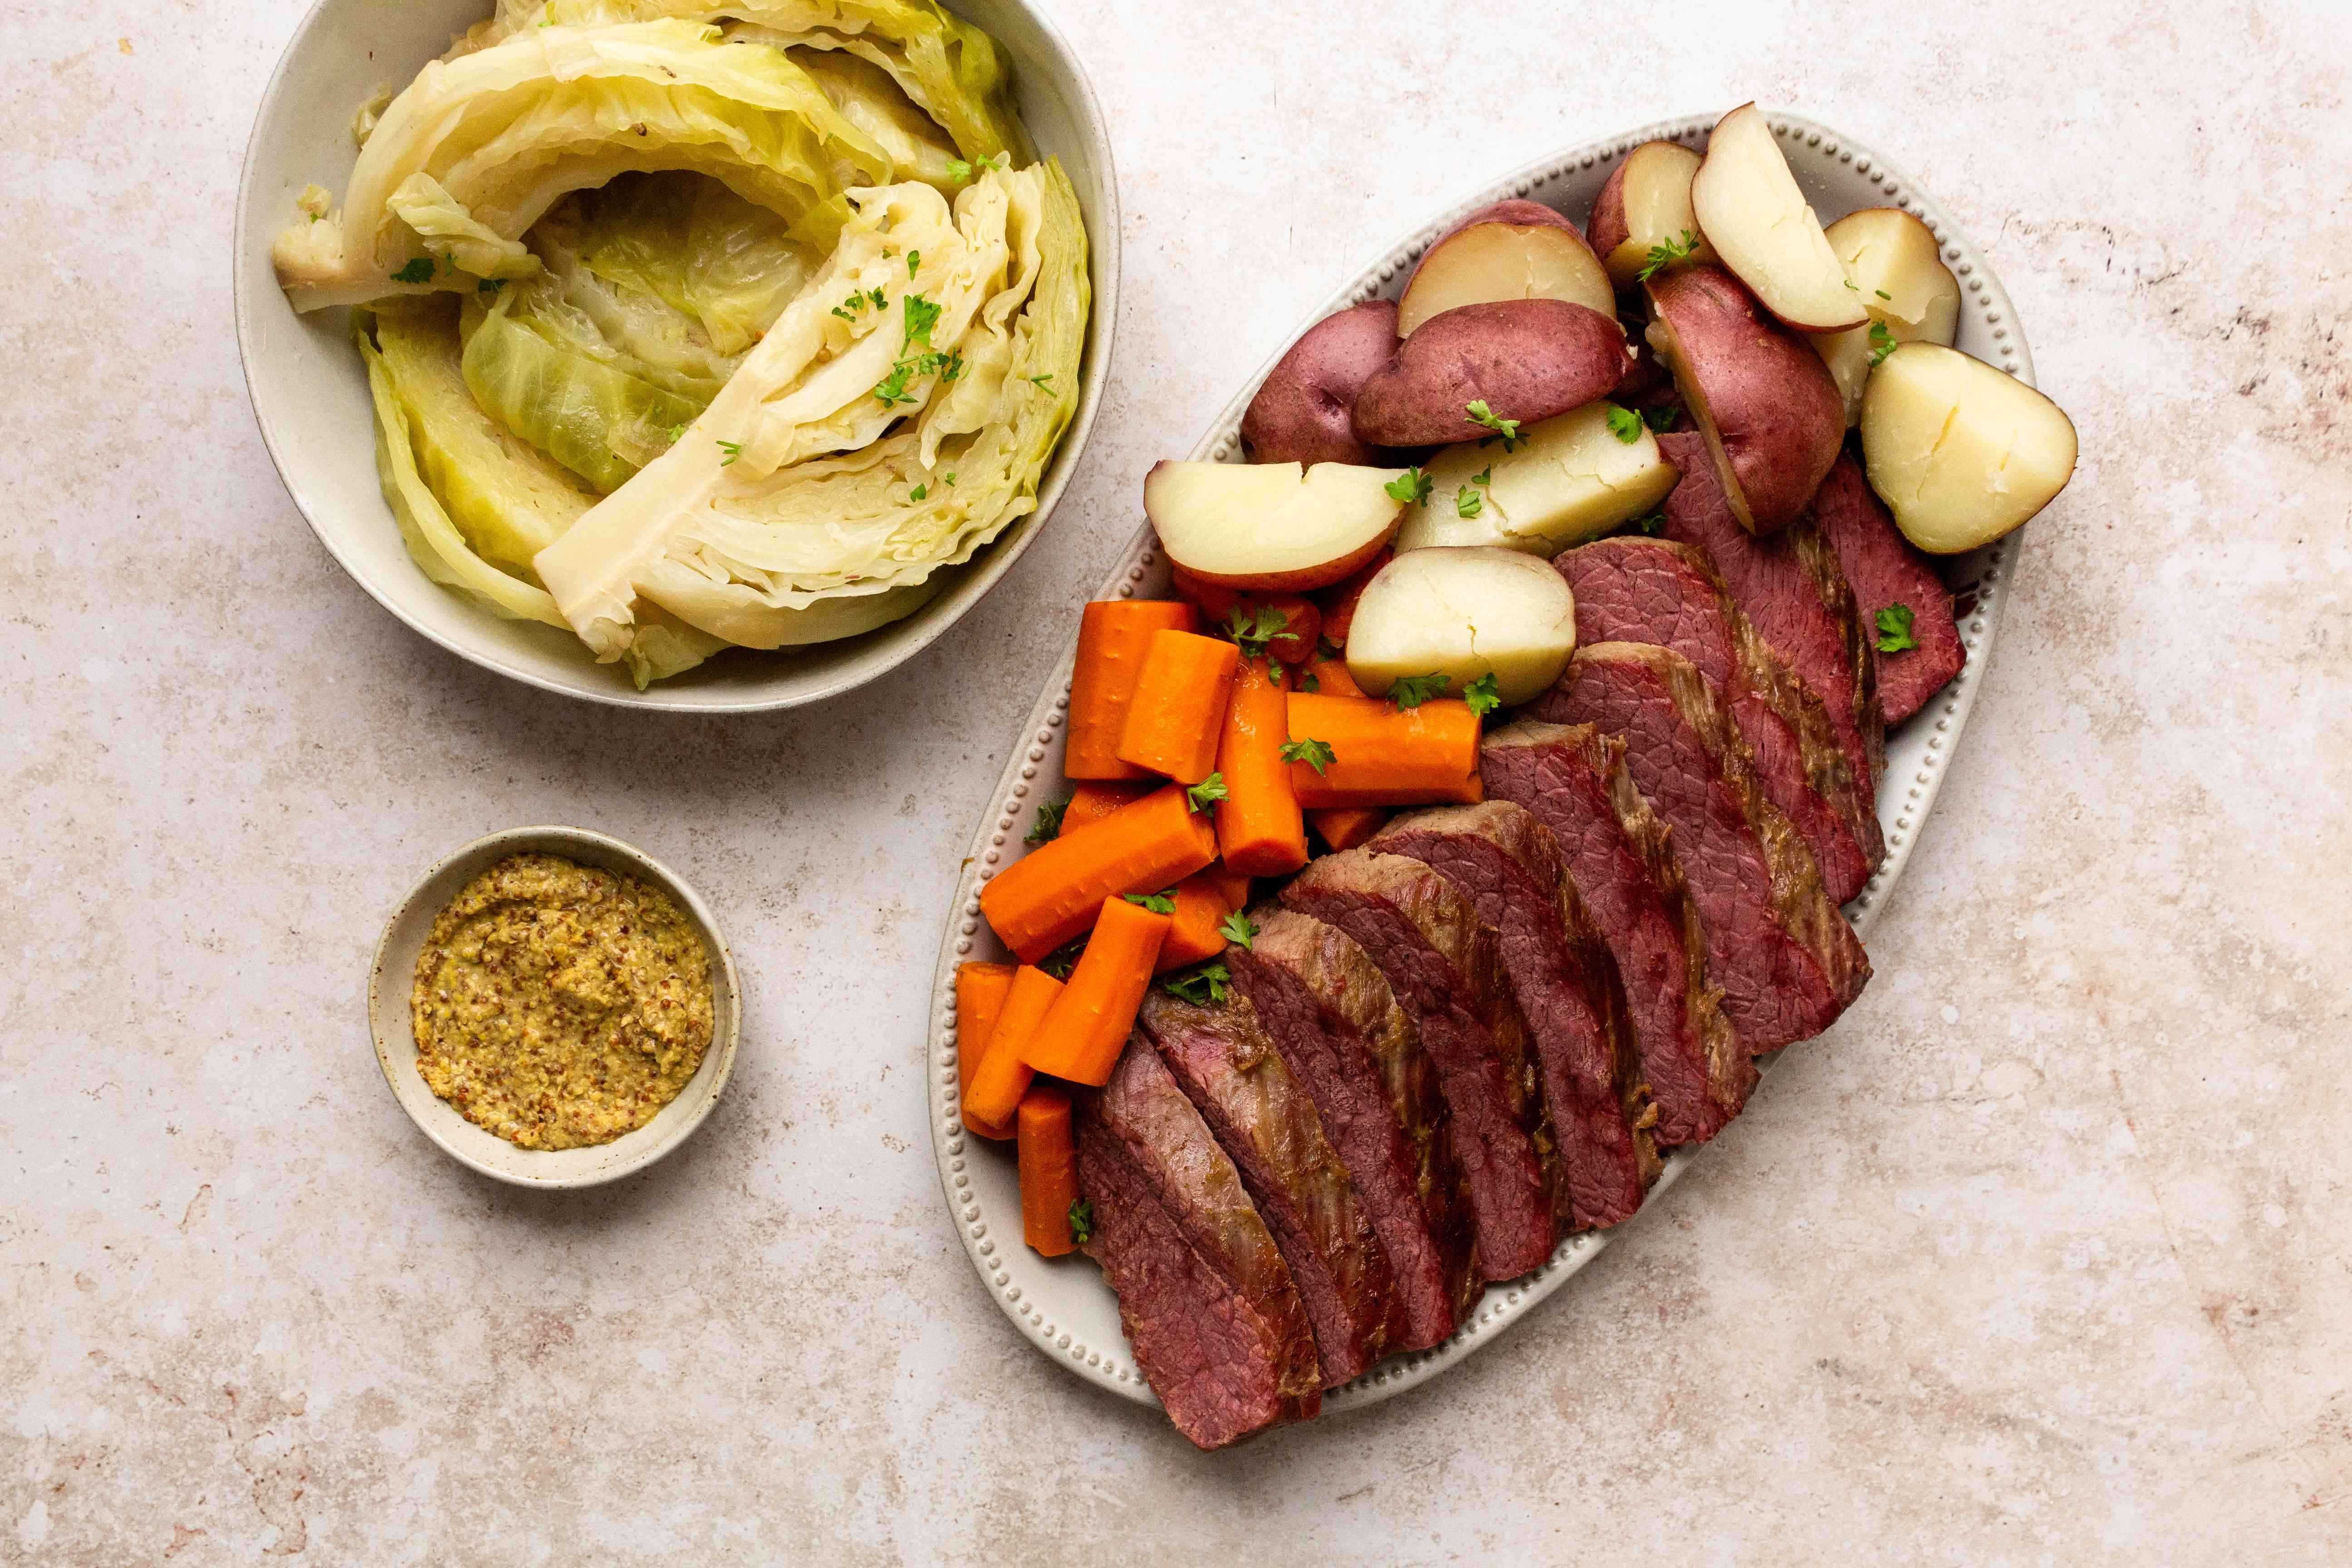 Instant Pot Corned Beef and Cabbage, served with potatoes and carrots